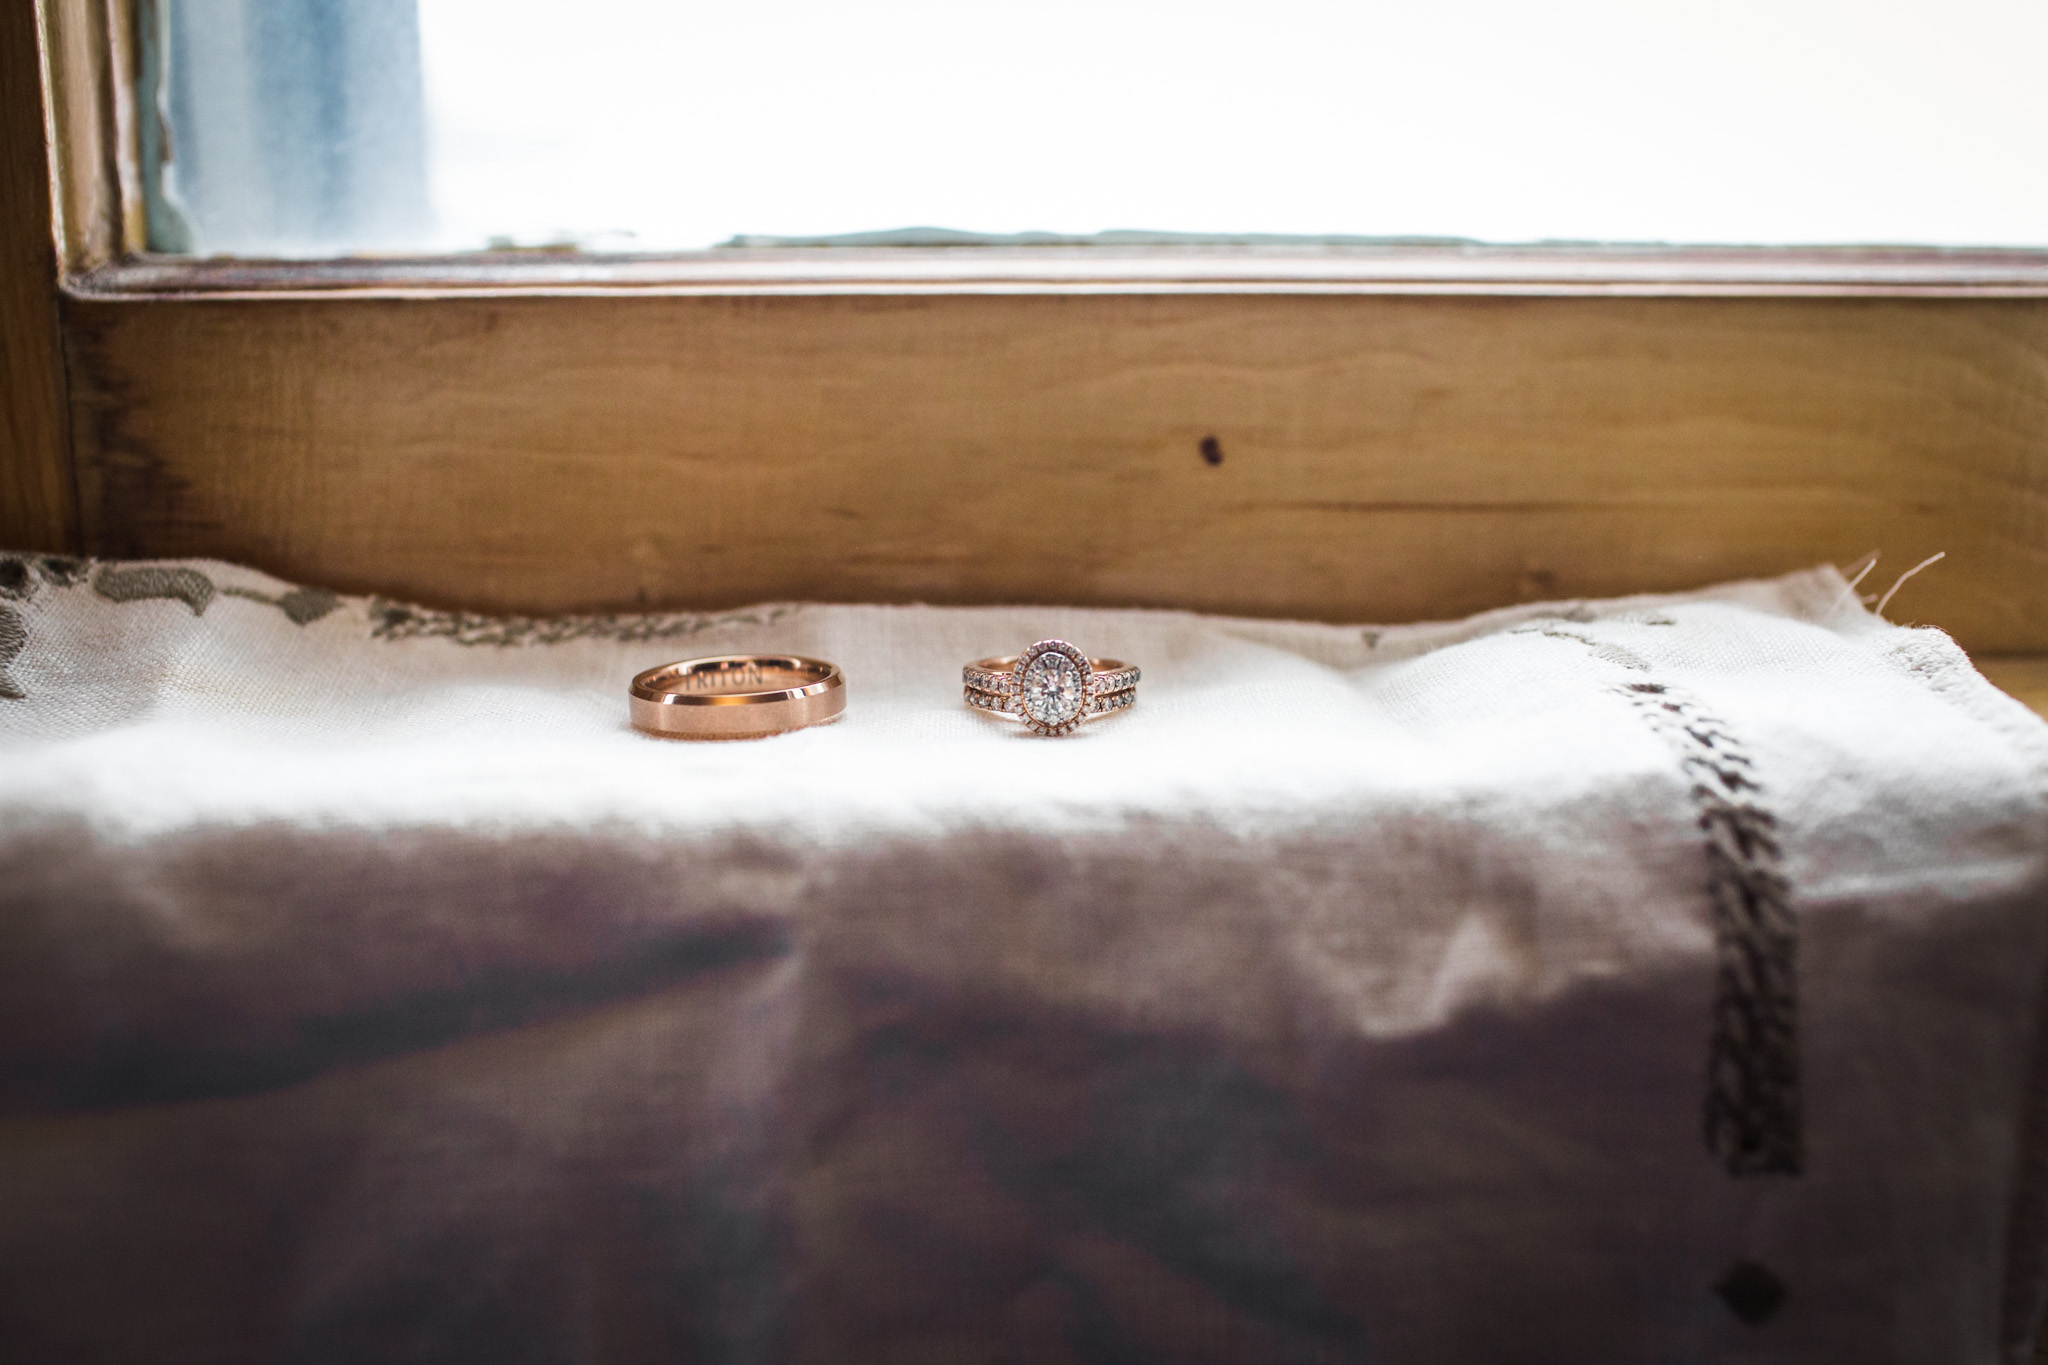 Zibell Spring Wedding, Bride and Groom, Powerful, Connected, Exploration, Laura Duggleby Photography -39.JPG